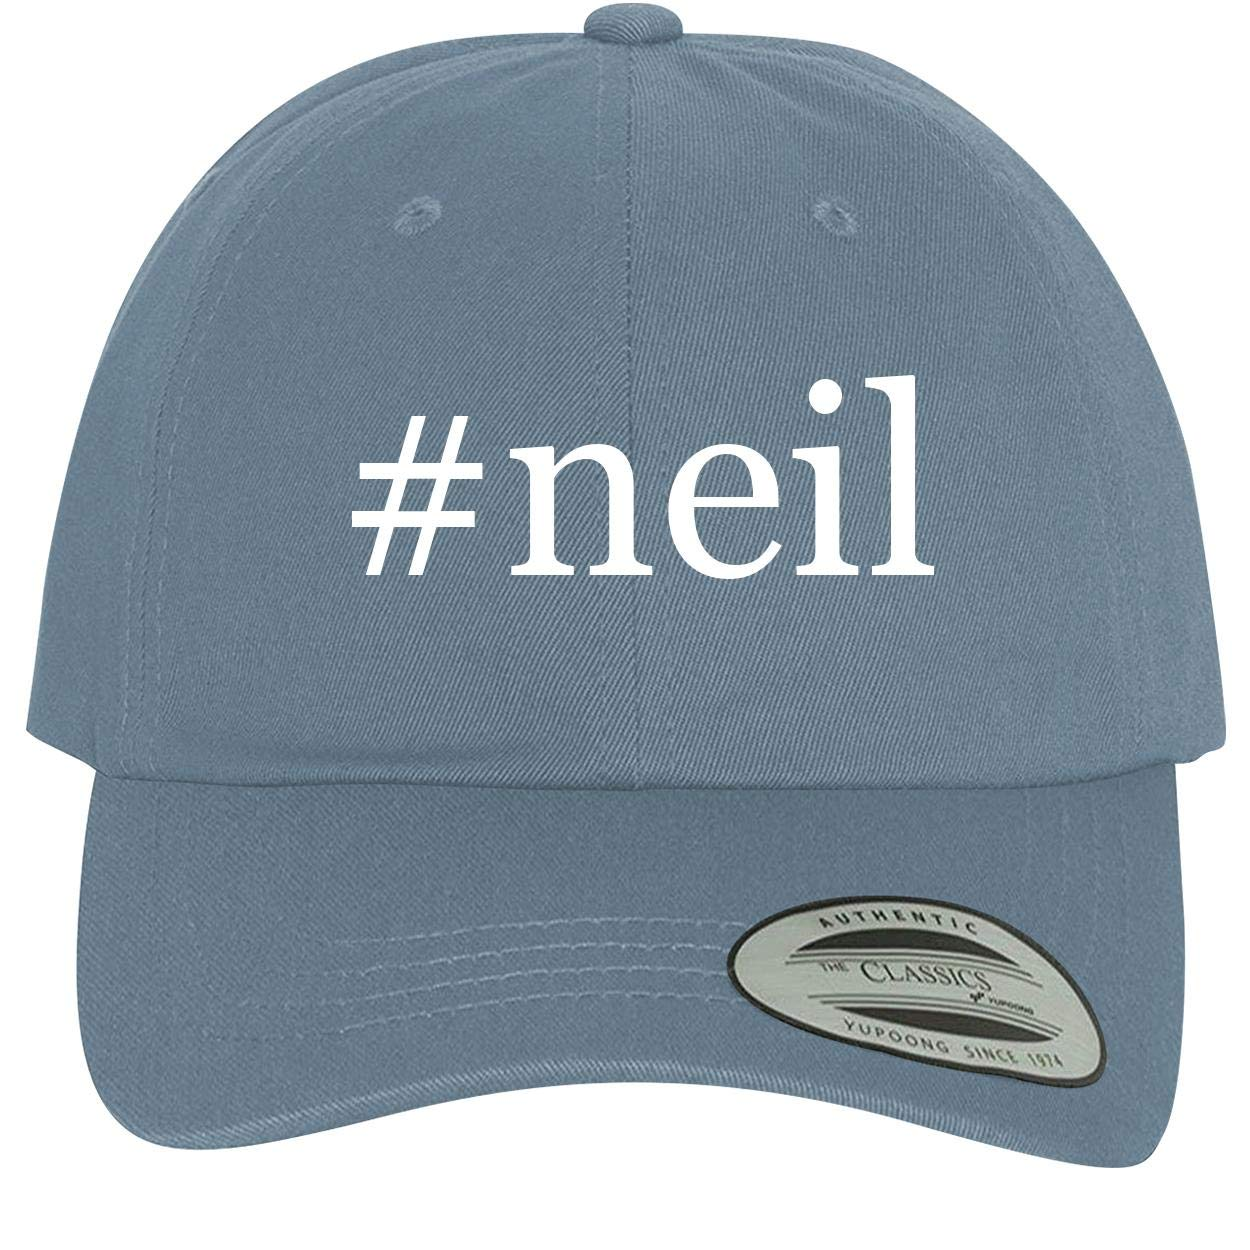 Comfortable Dad Hat Baseball Cap BH Cool Designs #Neil